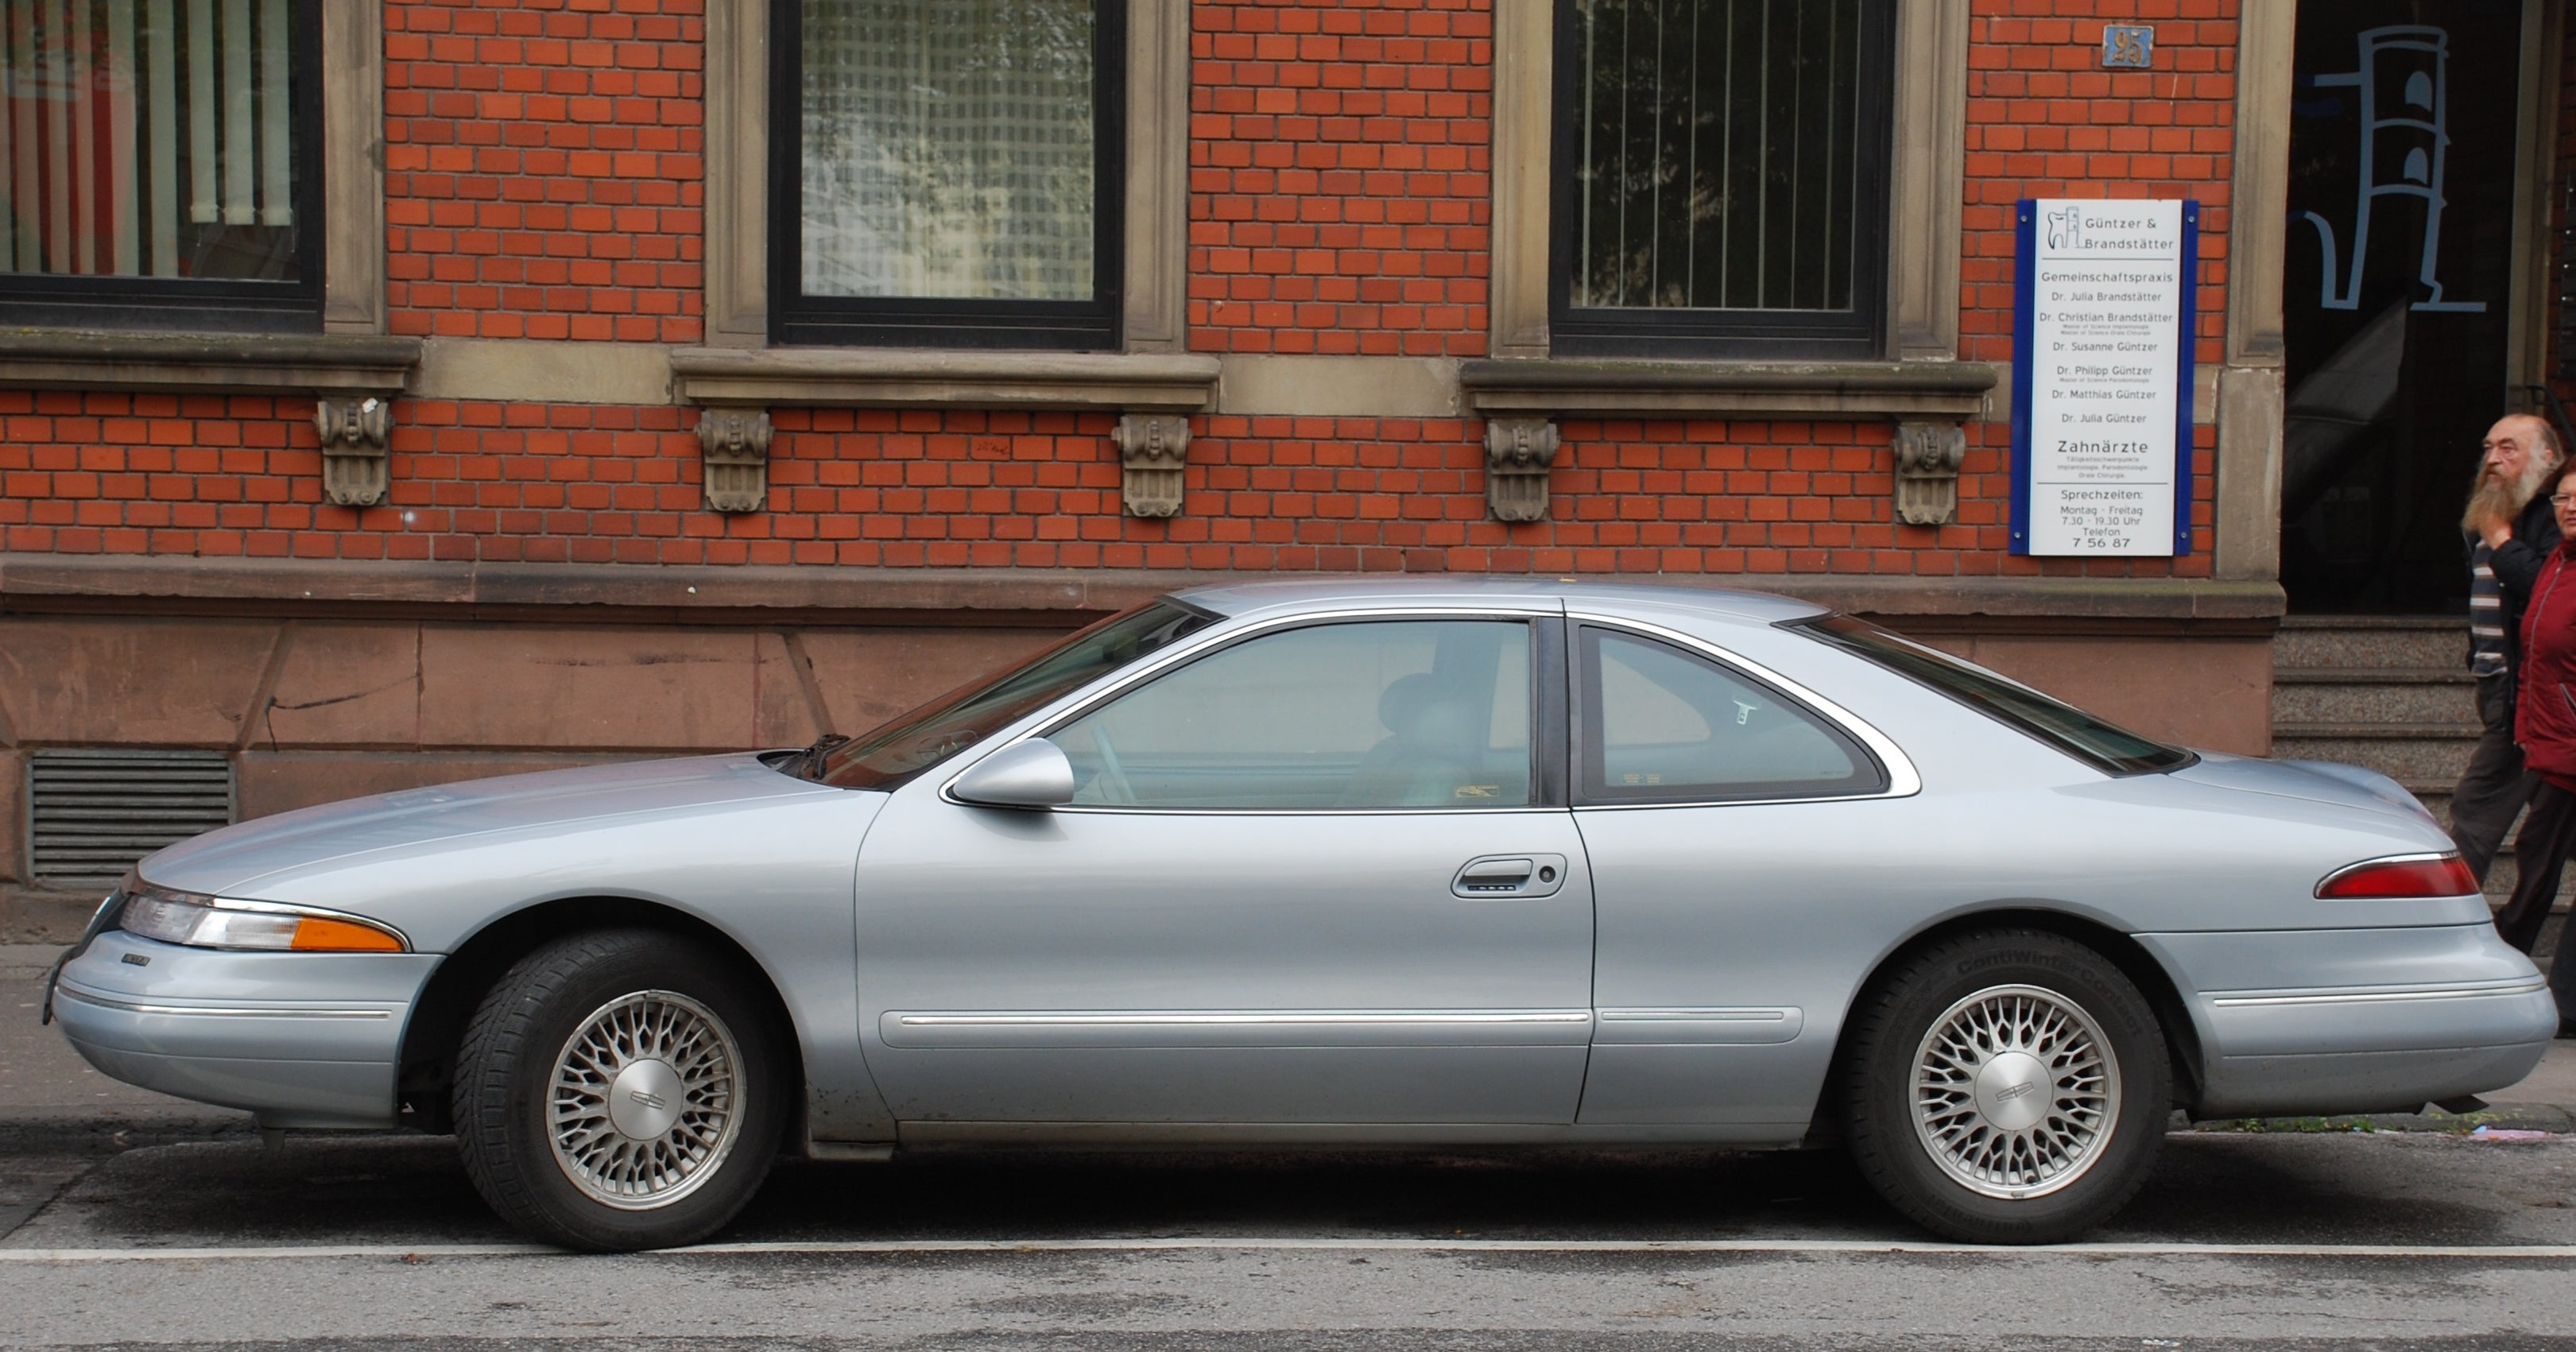 Craigslist Seattle Cars By Owner >> 1000+ images about Lincoln Mark VIII on Pinterest | Lincoln, Custom wheels and Slammed